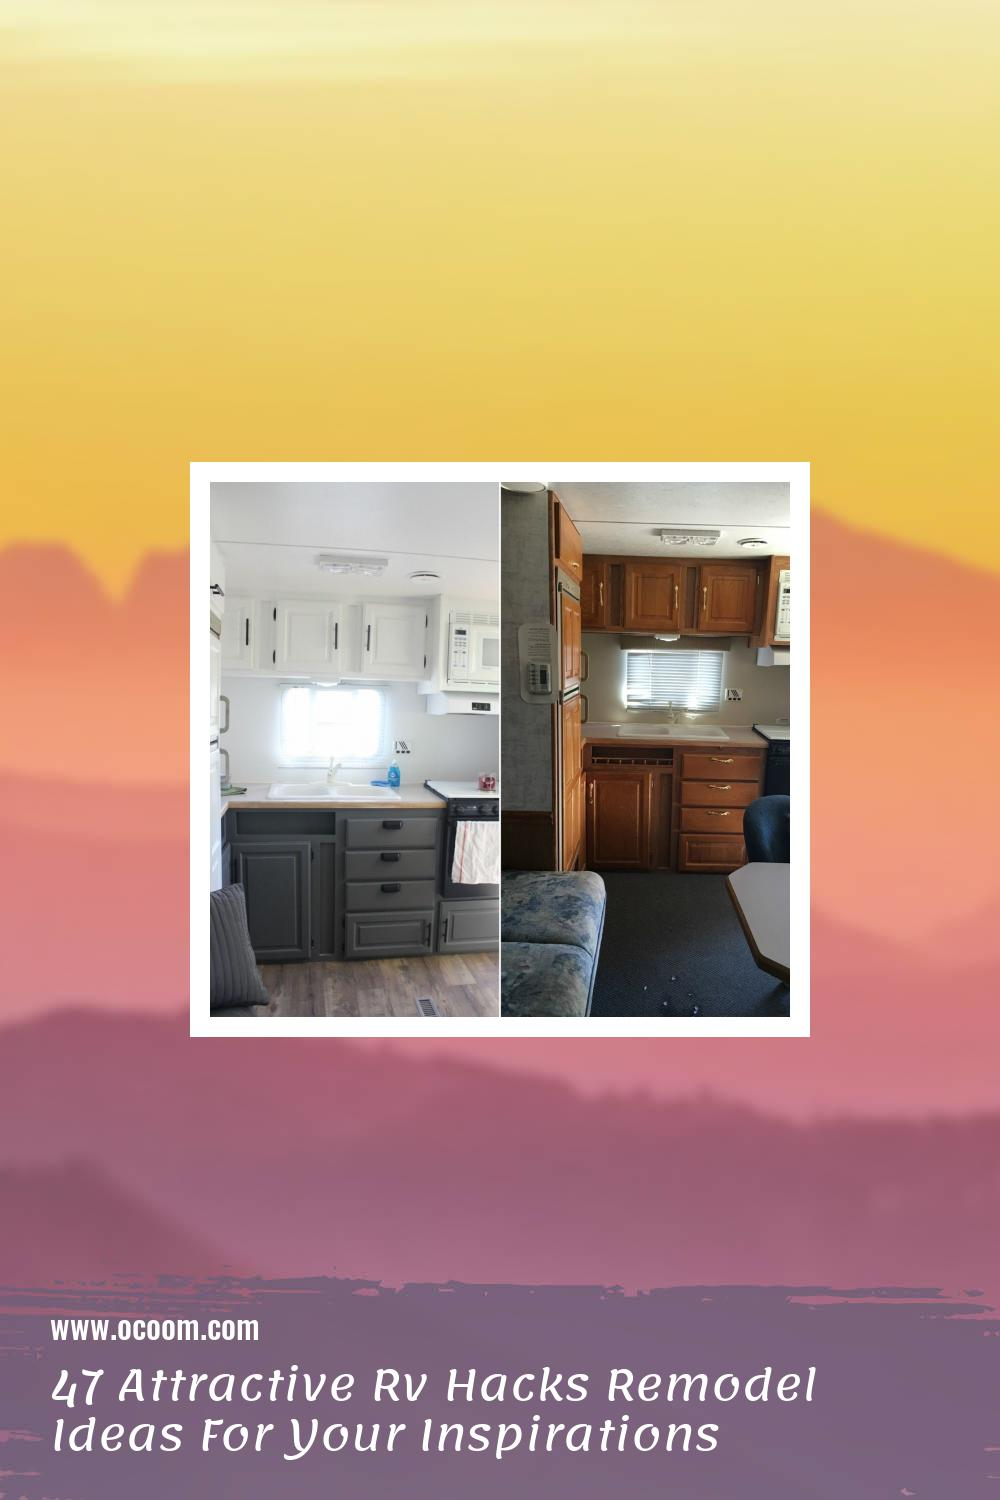 47 Attractive Rv Hacks Remodel Ideas For Your Inspirations 19